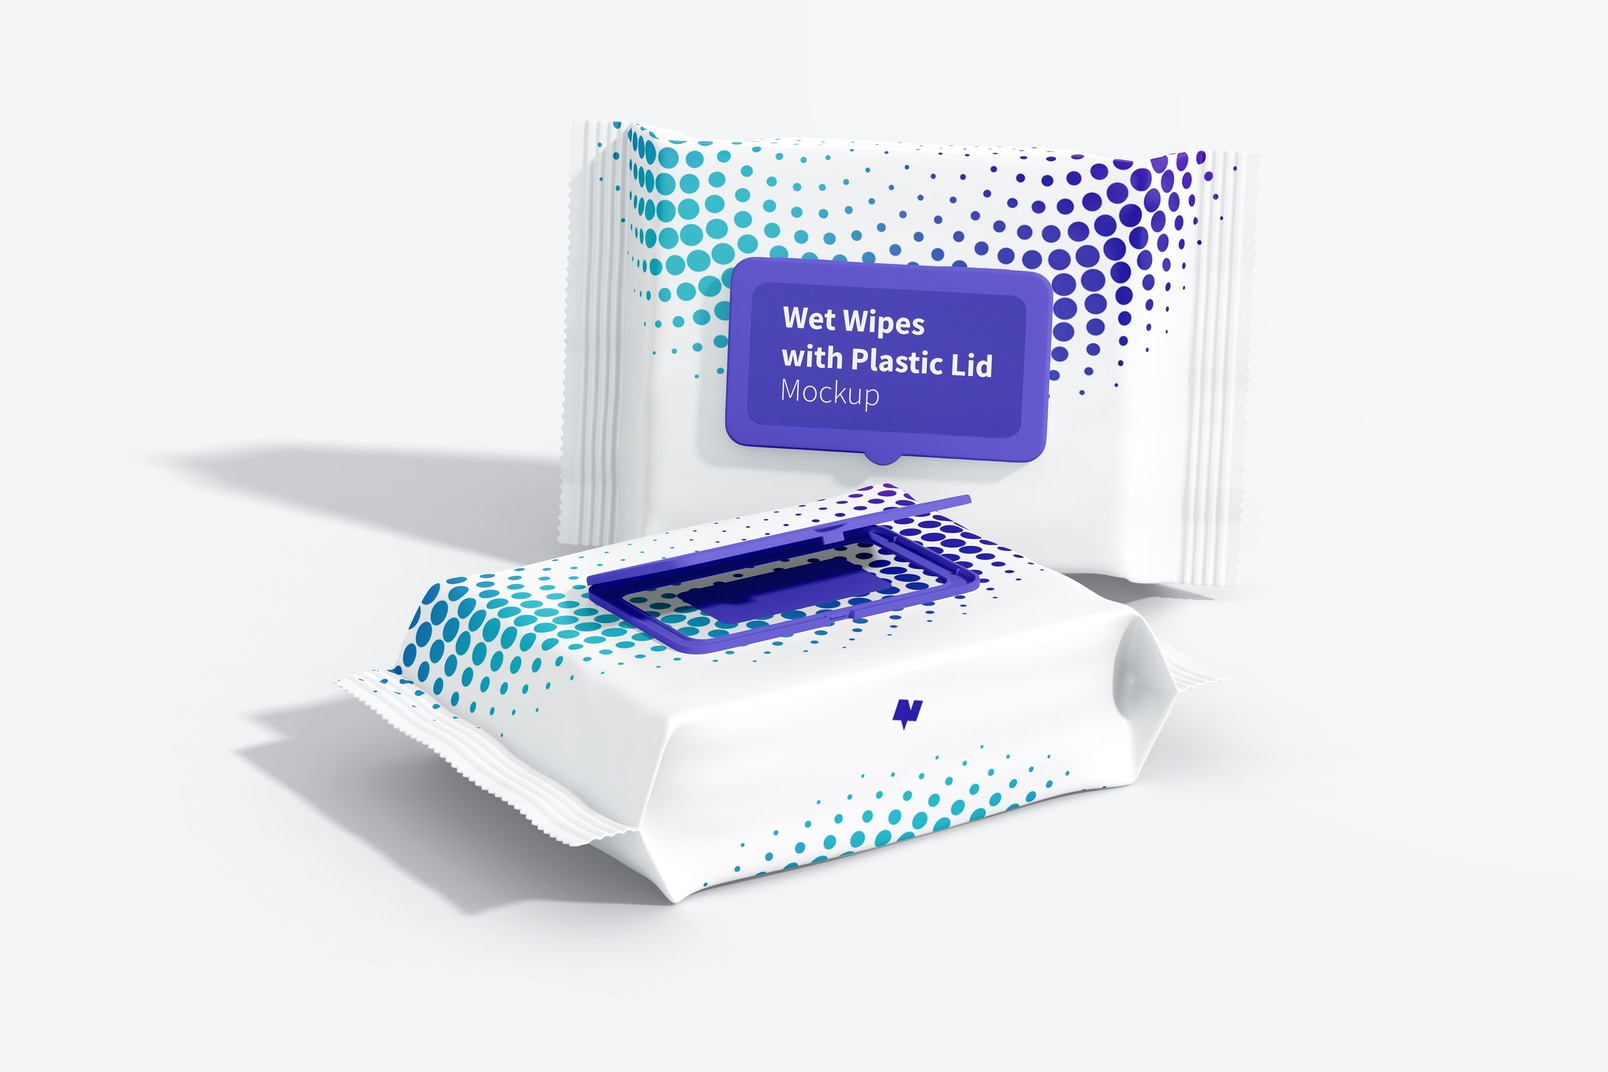 Wet Wipes Large Packaging with Plastic Lid Mockup, Perspective